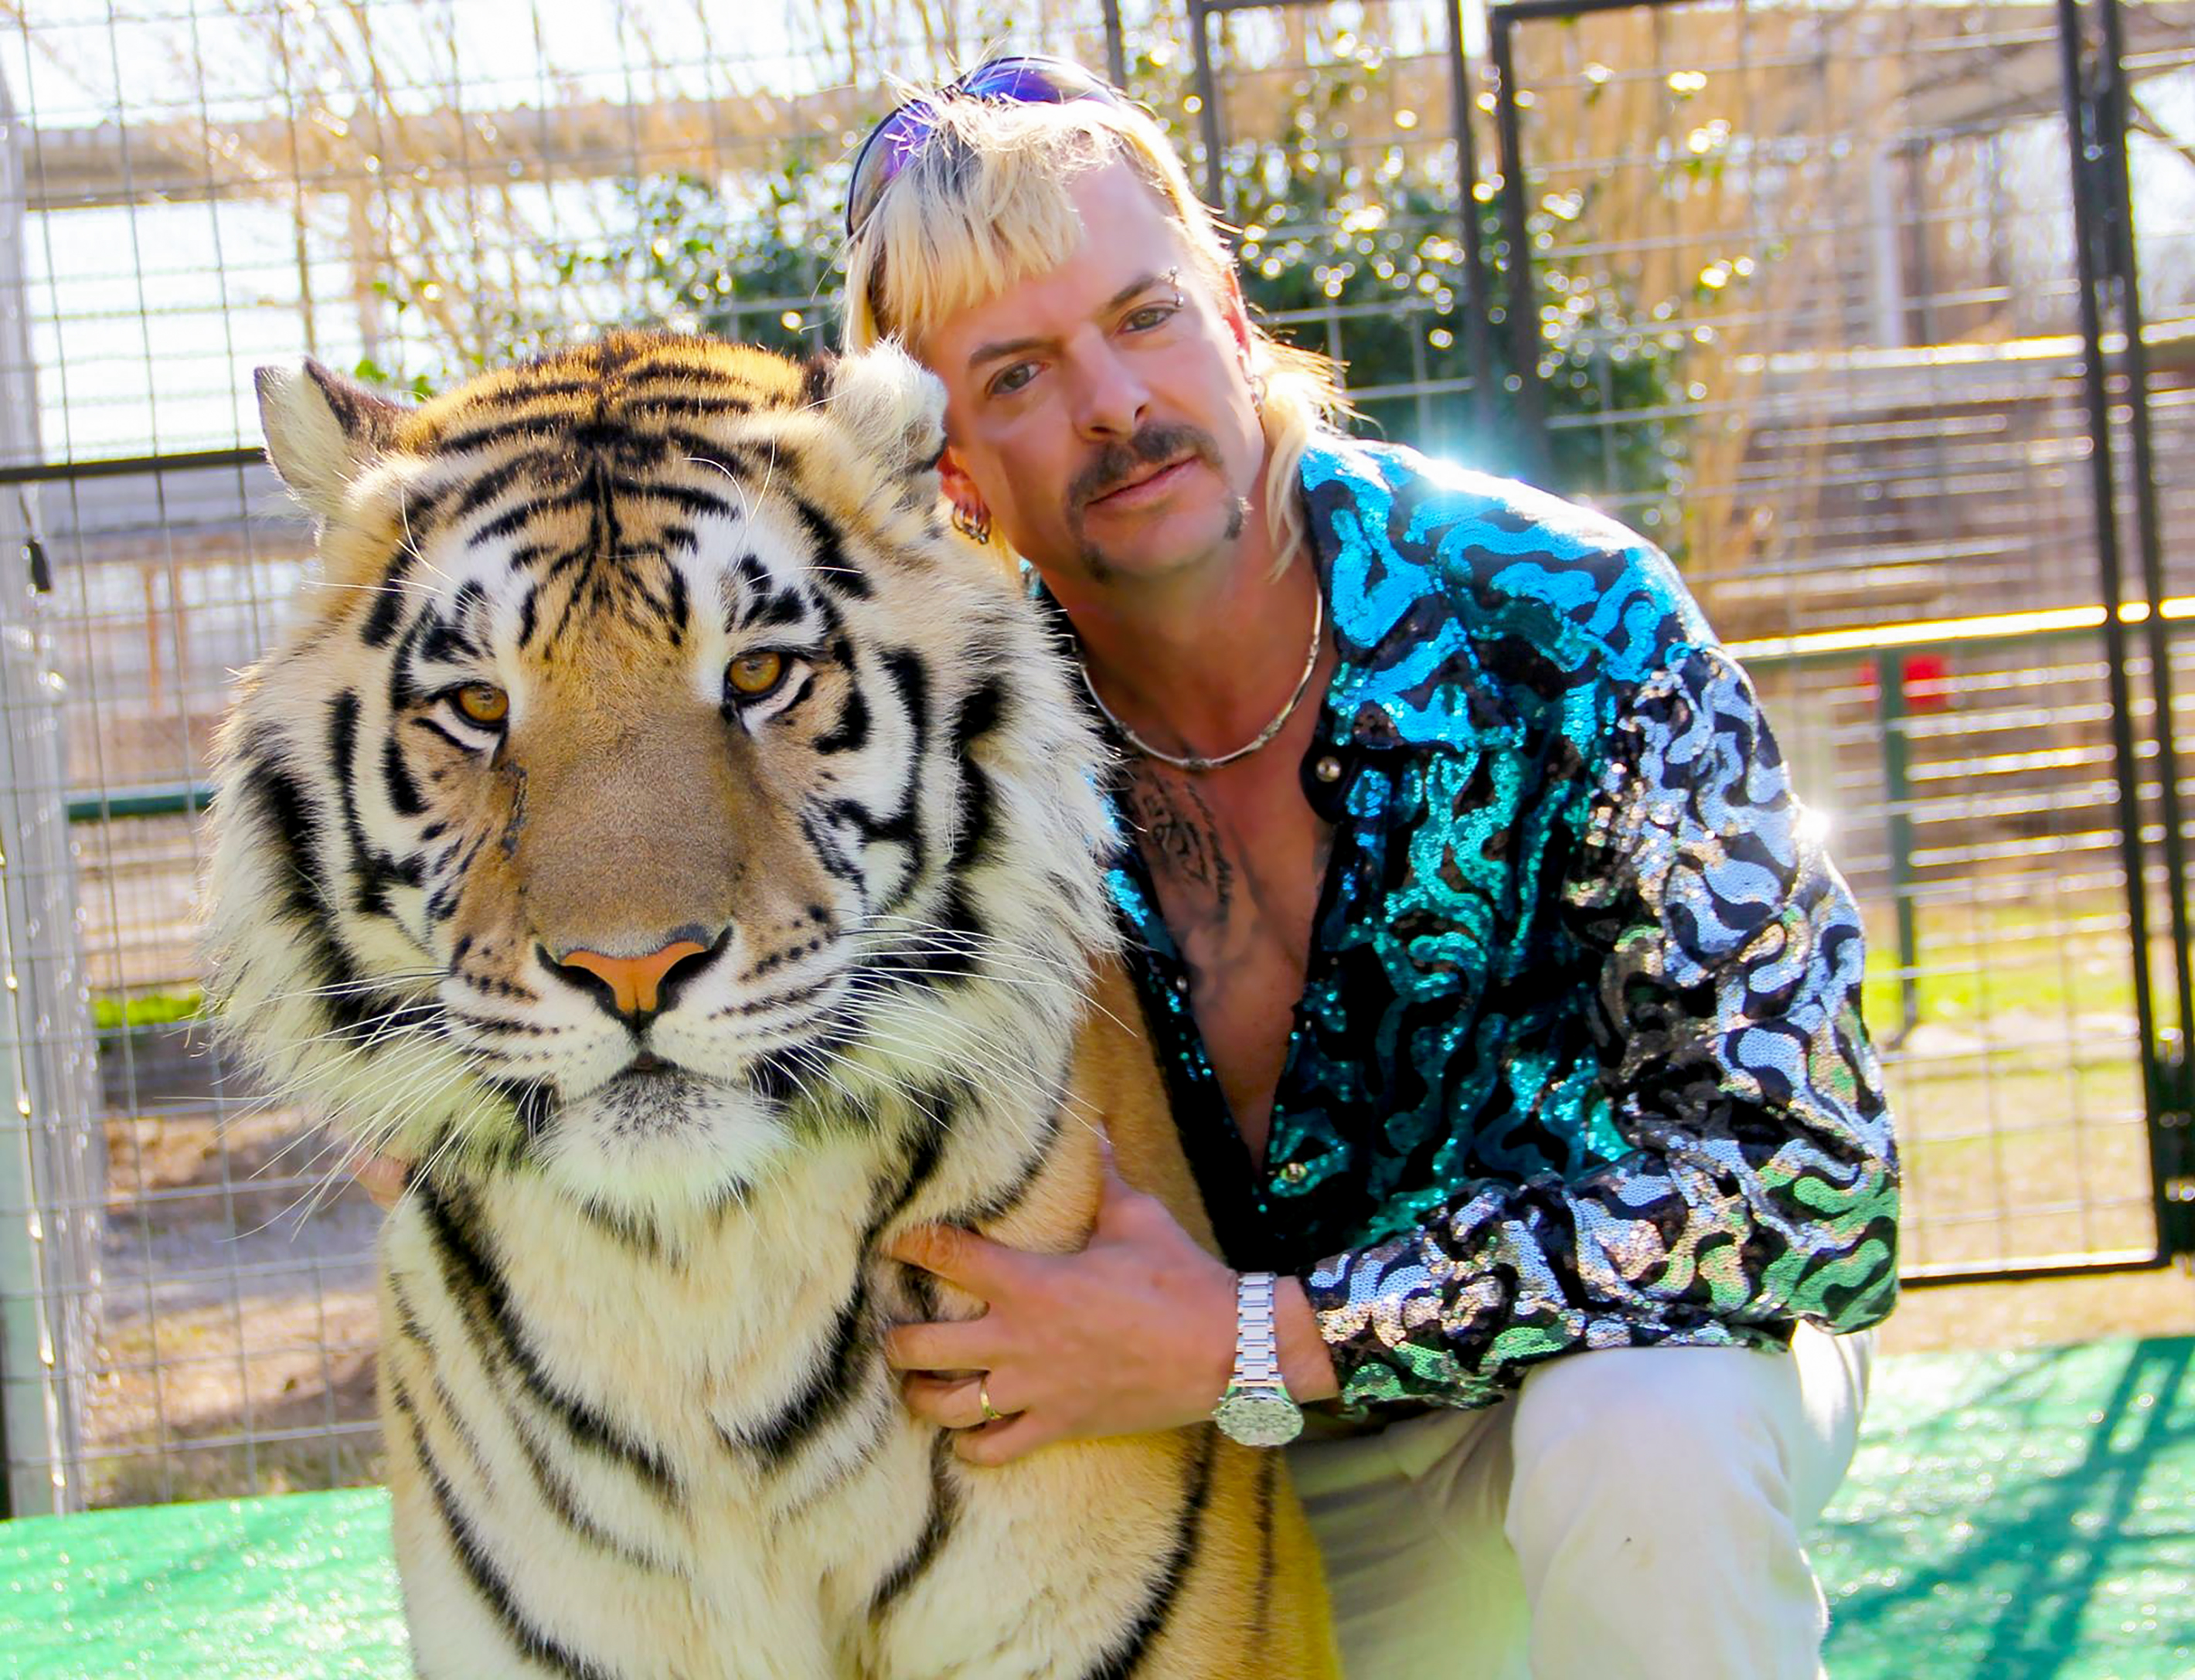 Tiger King star Joe Exotic